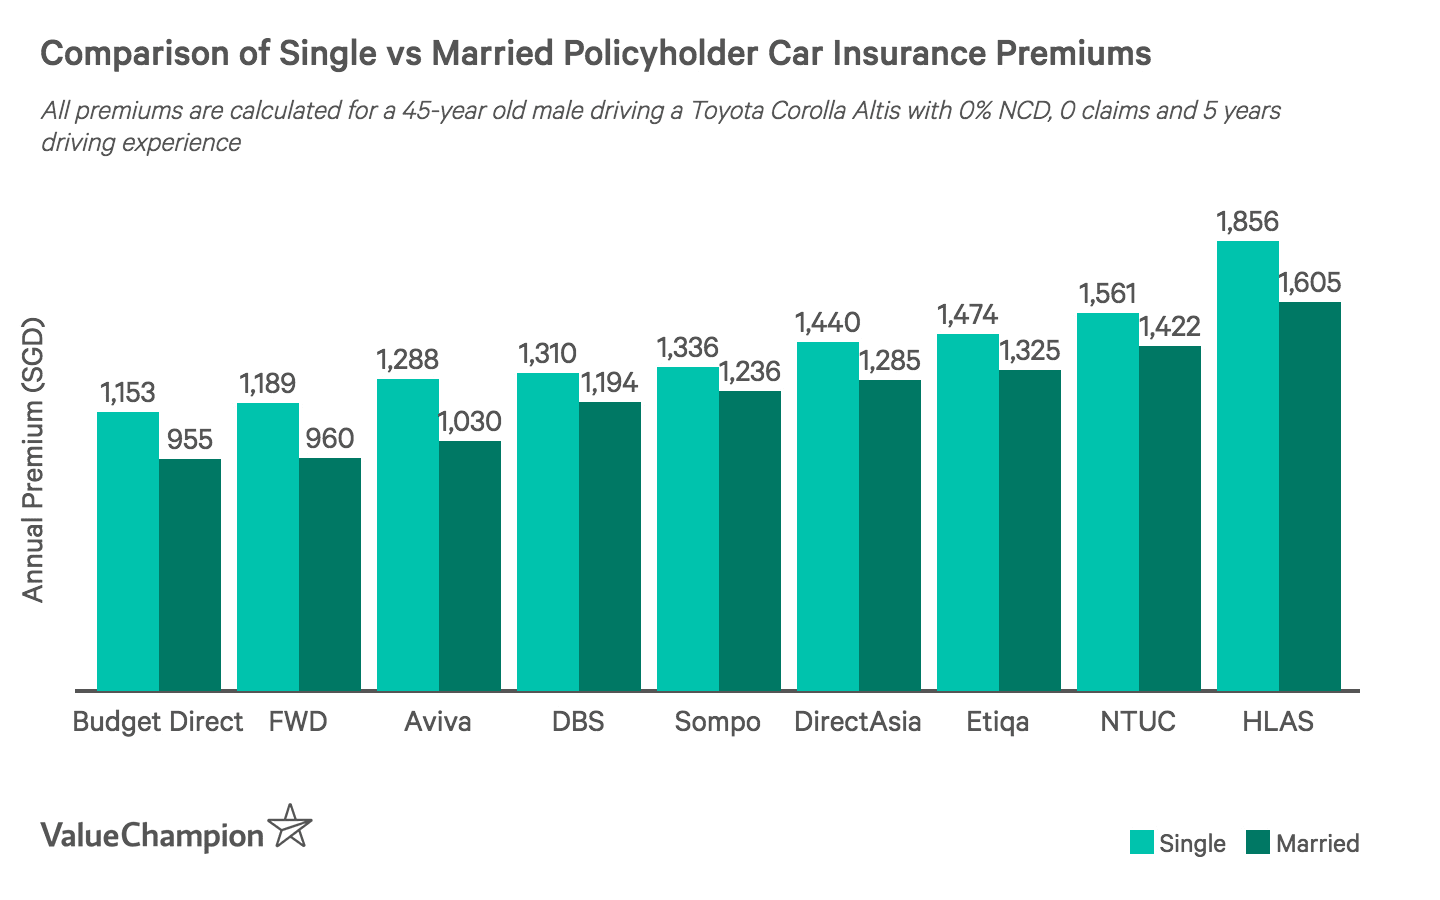 This graph shows how married policyholders will pay lower car insurance premiums than single policyholders